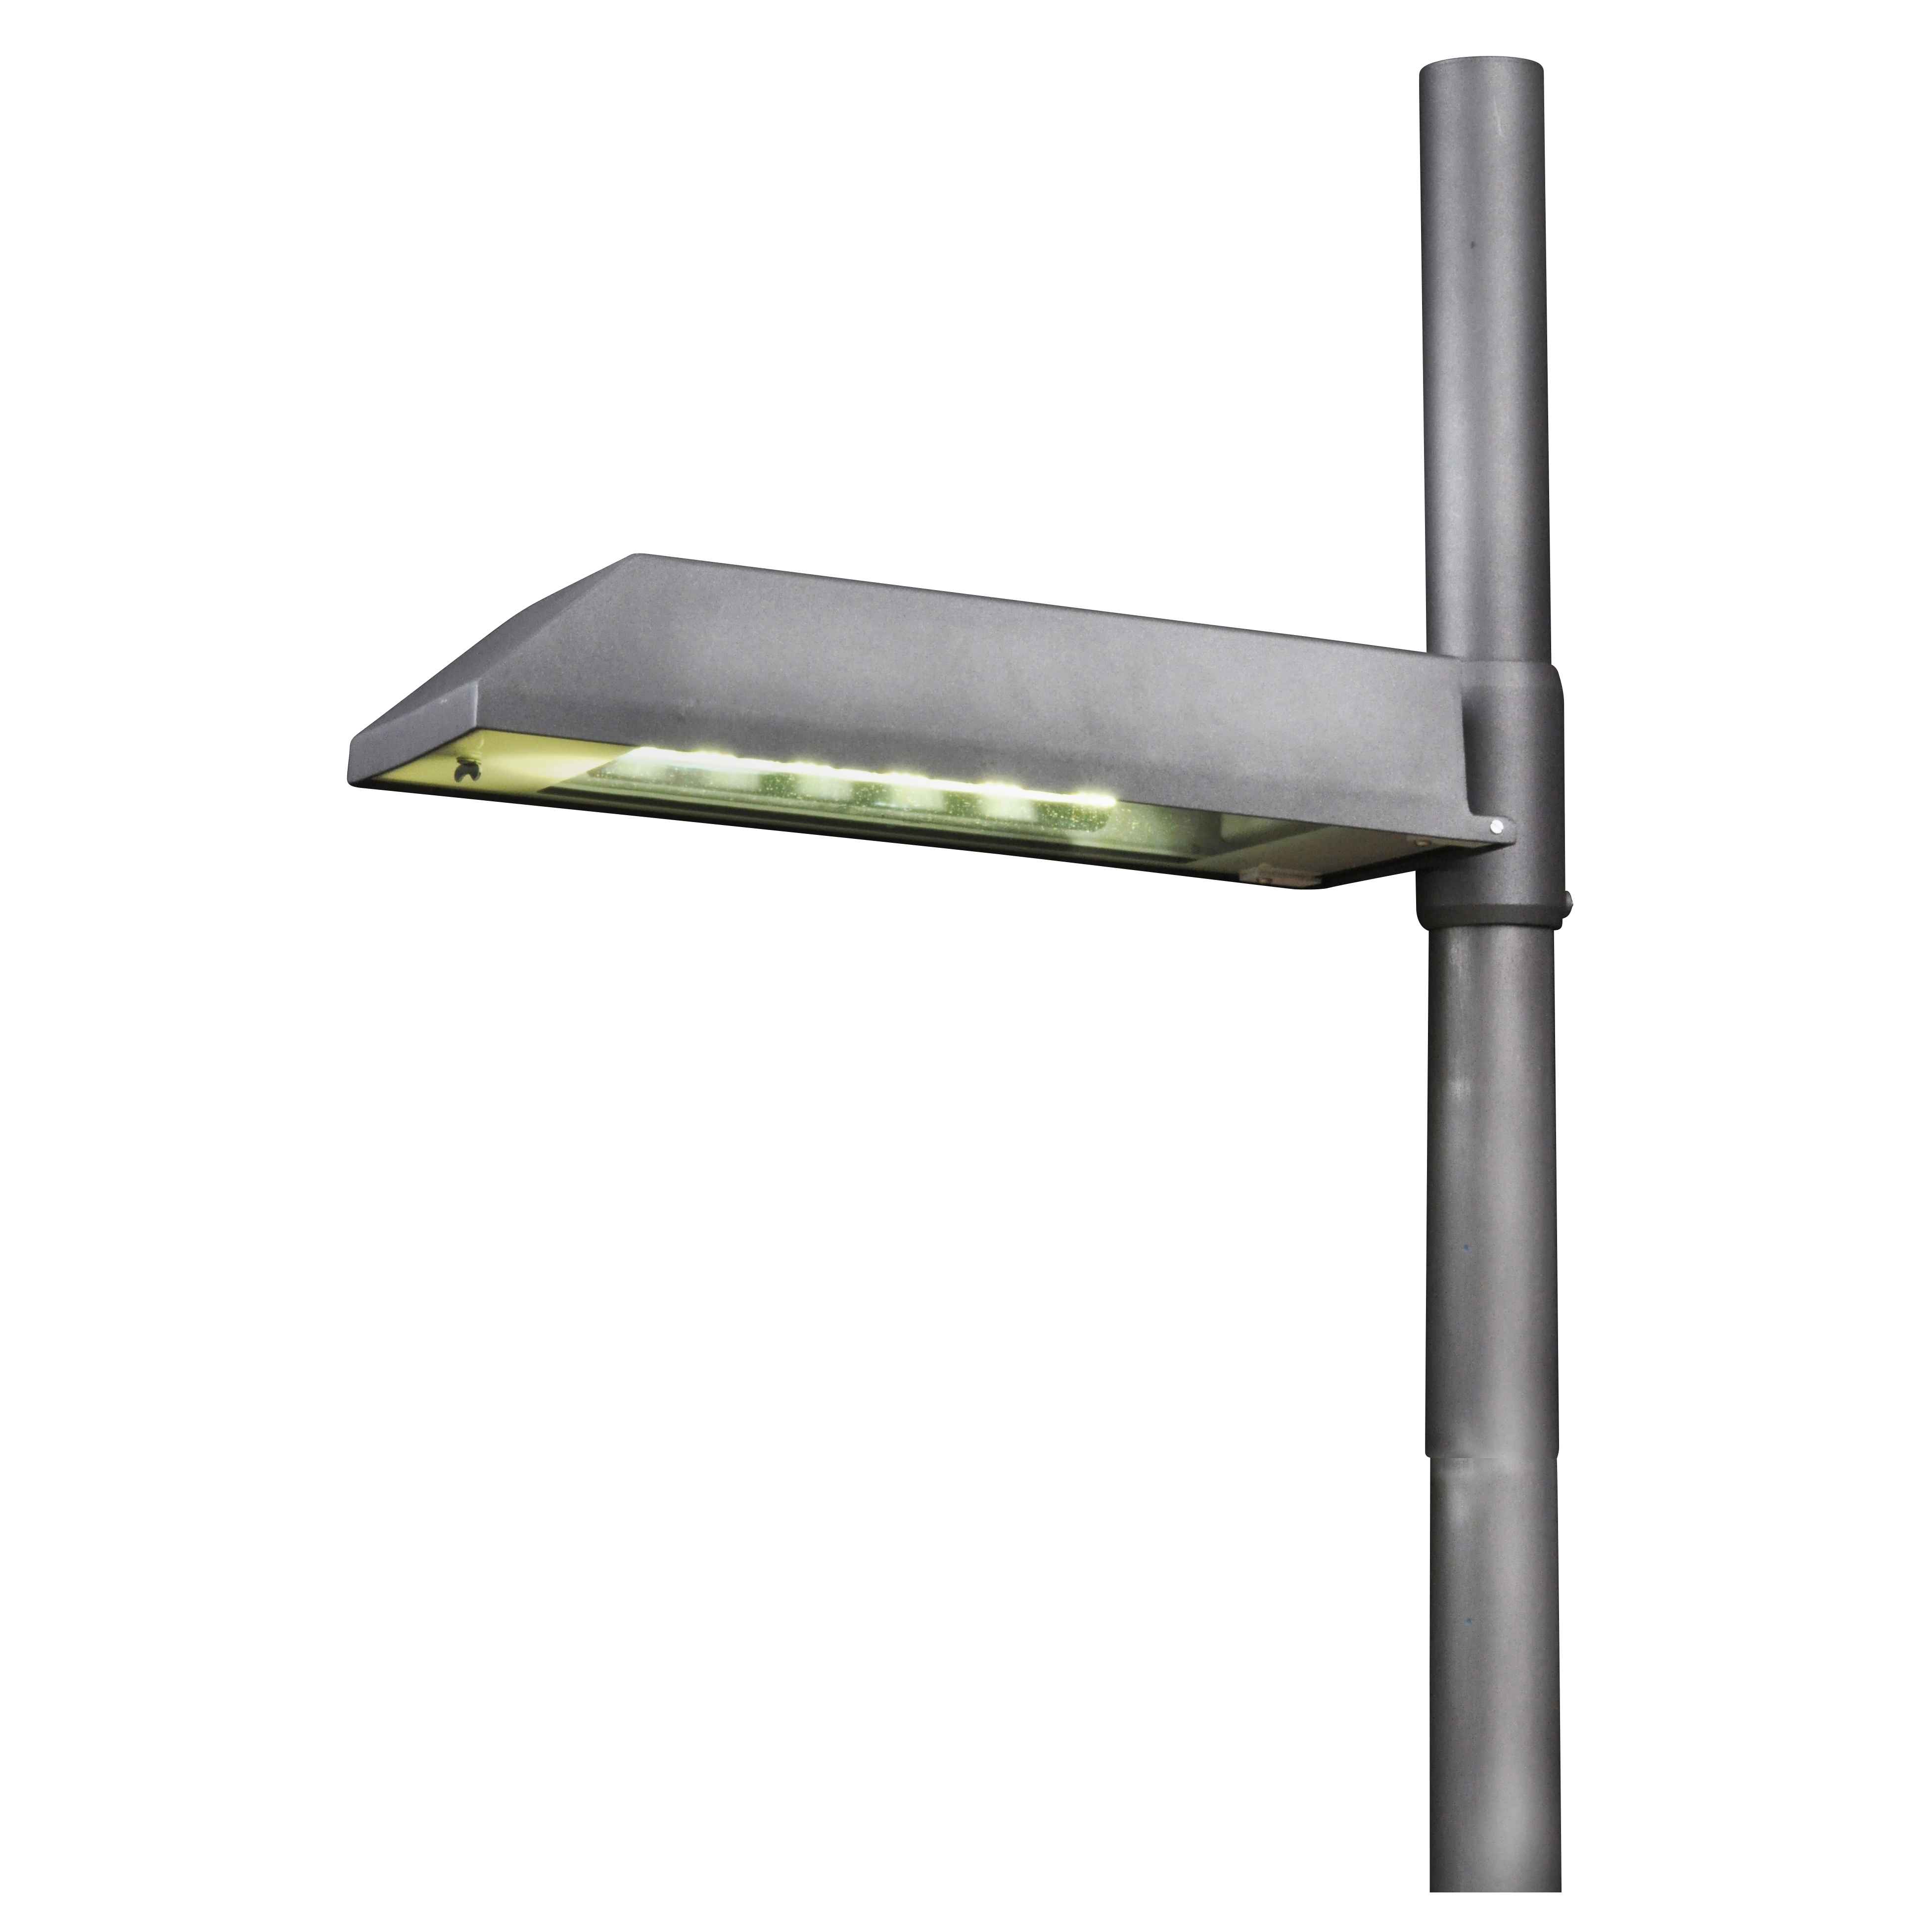 LED City Luminaire A